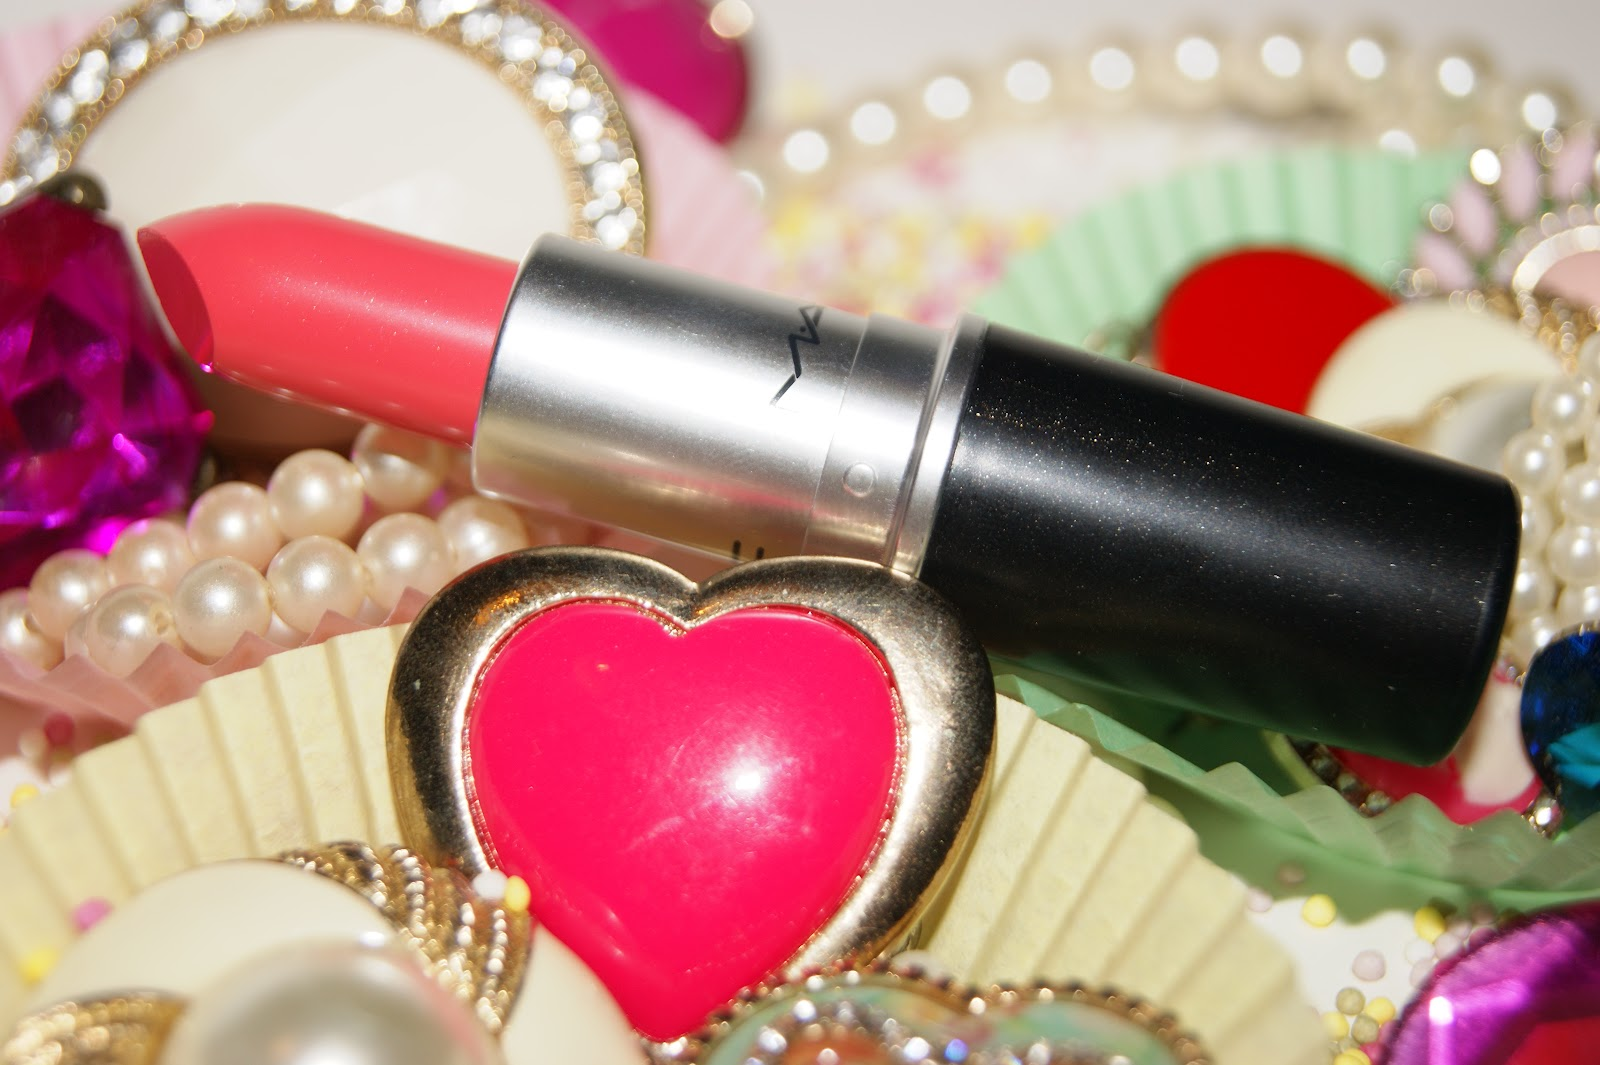 Mac Watch Me Simmer Lipstick - Review | The Sunday Girl